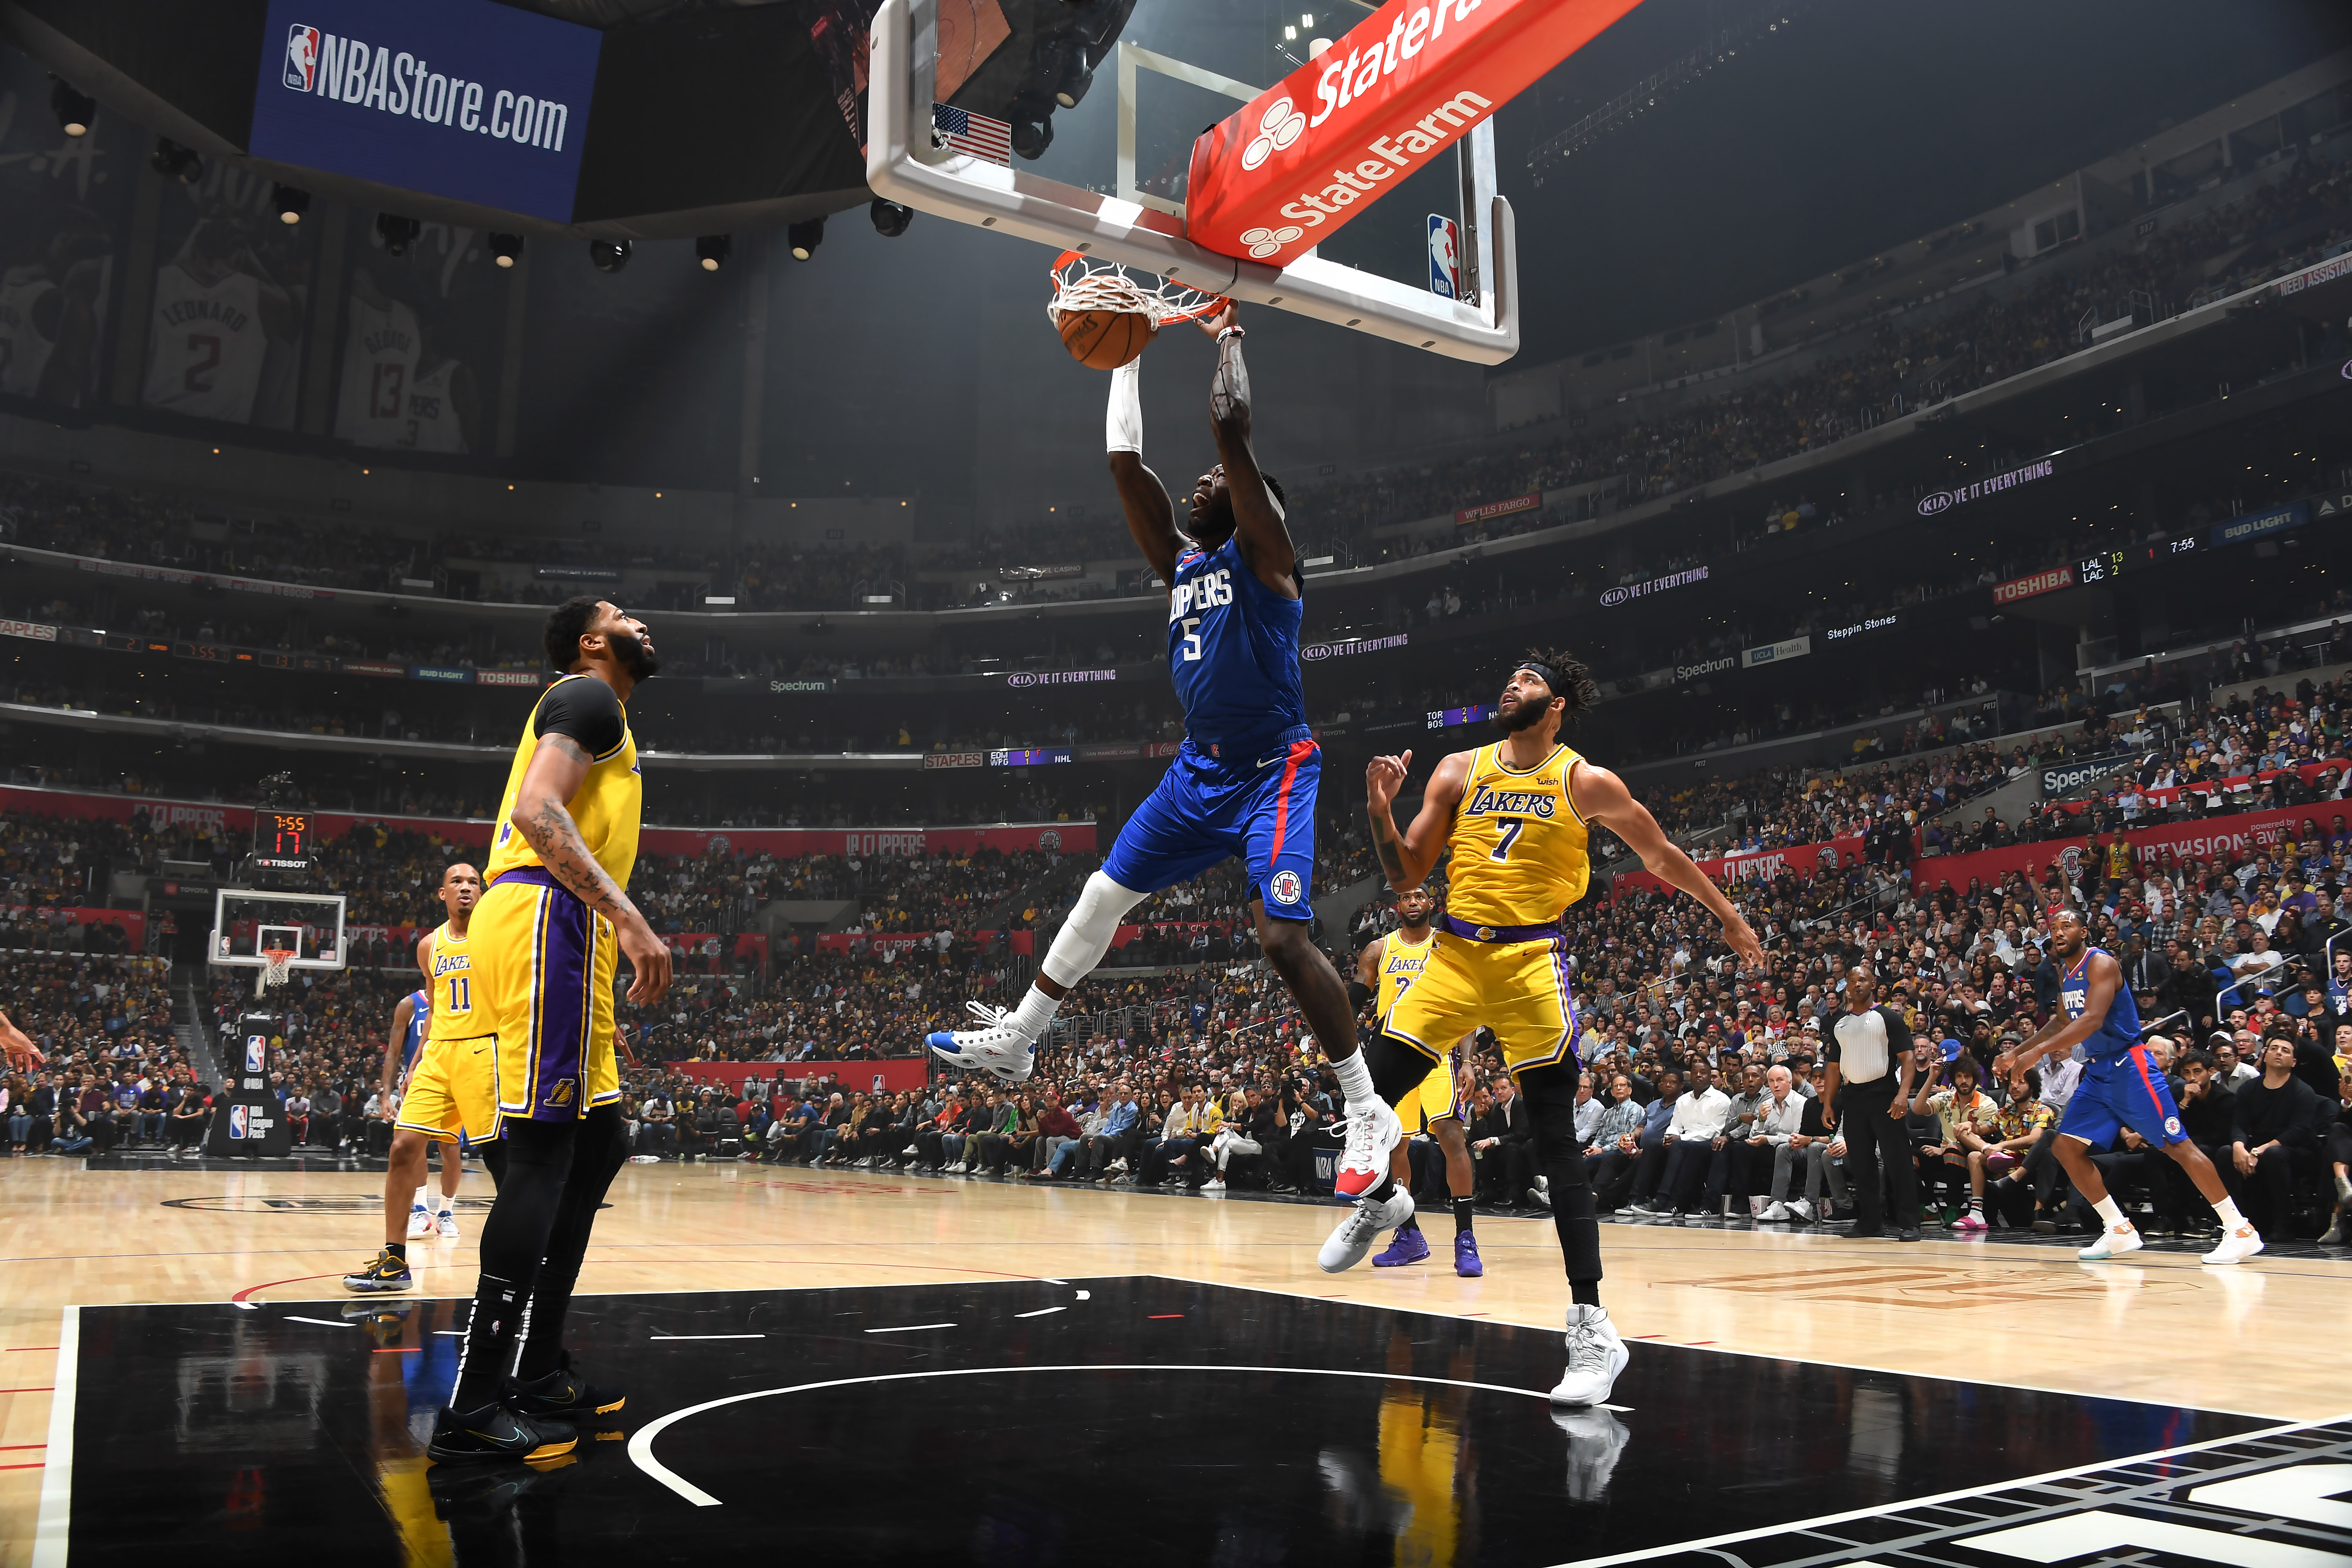 Lakers Sign Montrezl Harrell Away From Rival Clippers, Add Veteran Wesley Matthews